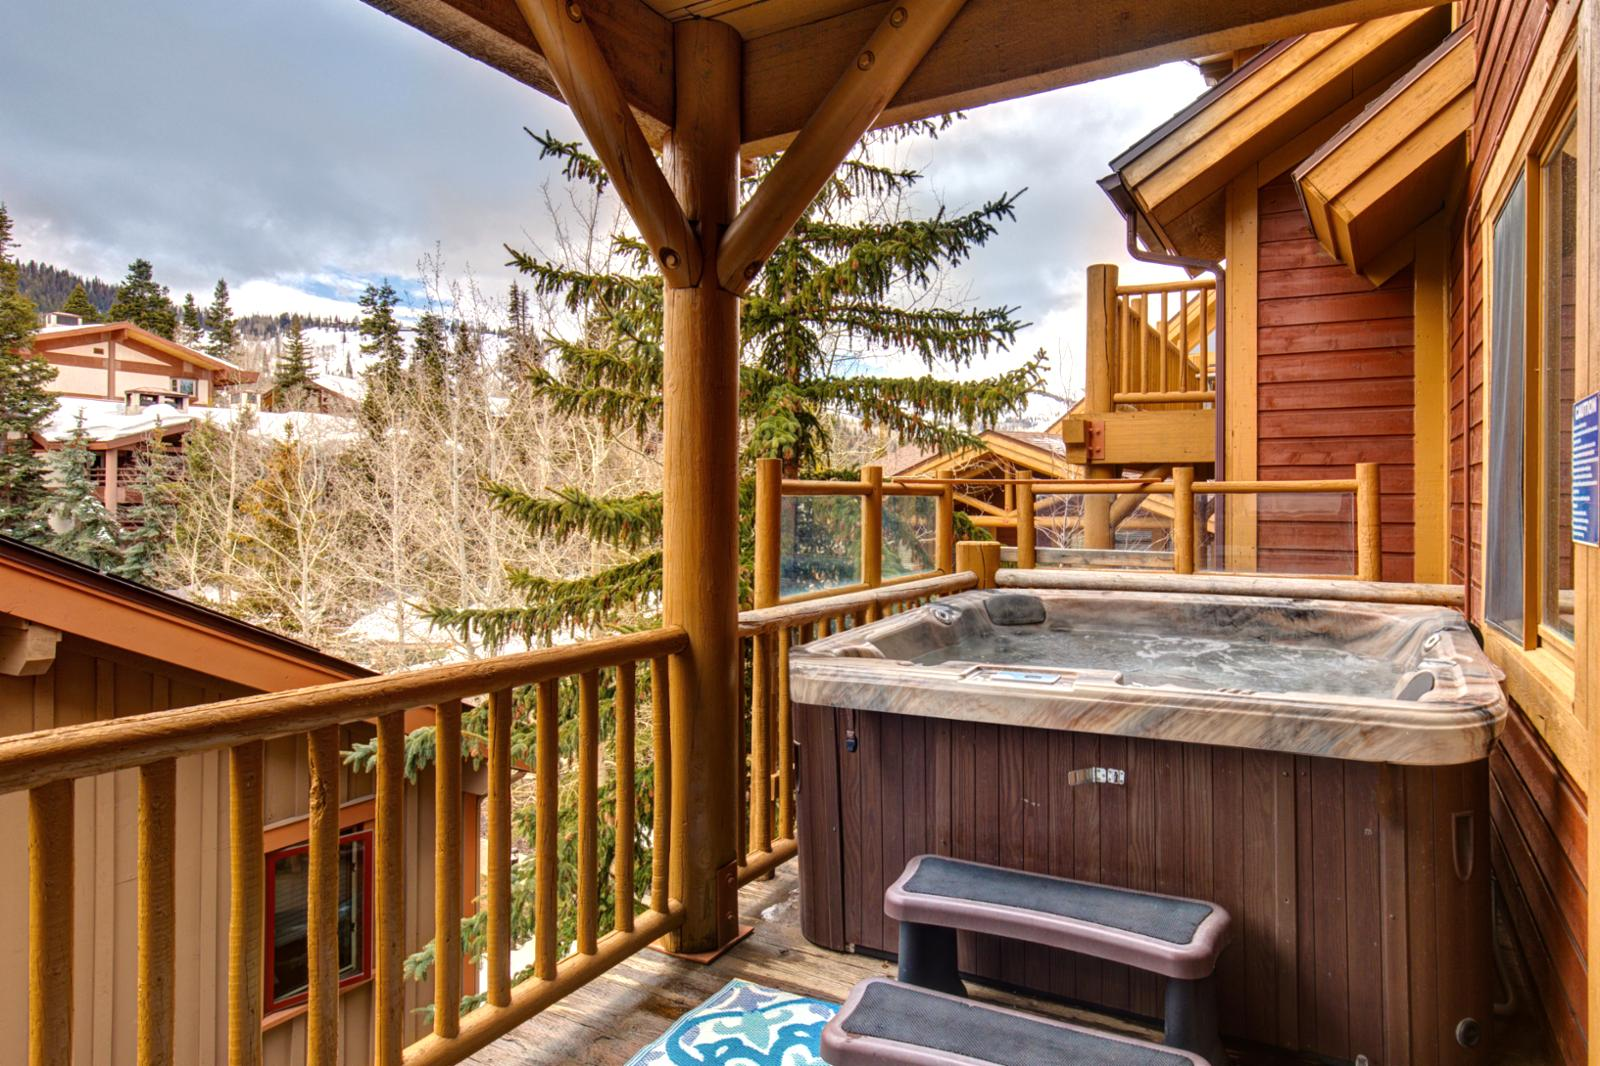 Relax and unwind after a long day on the mountain